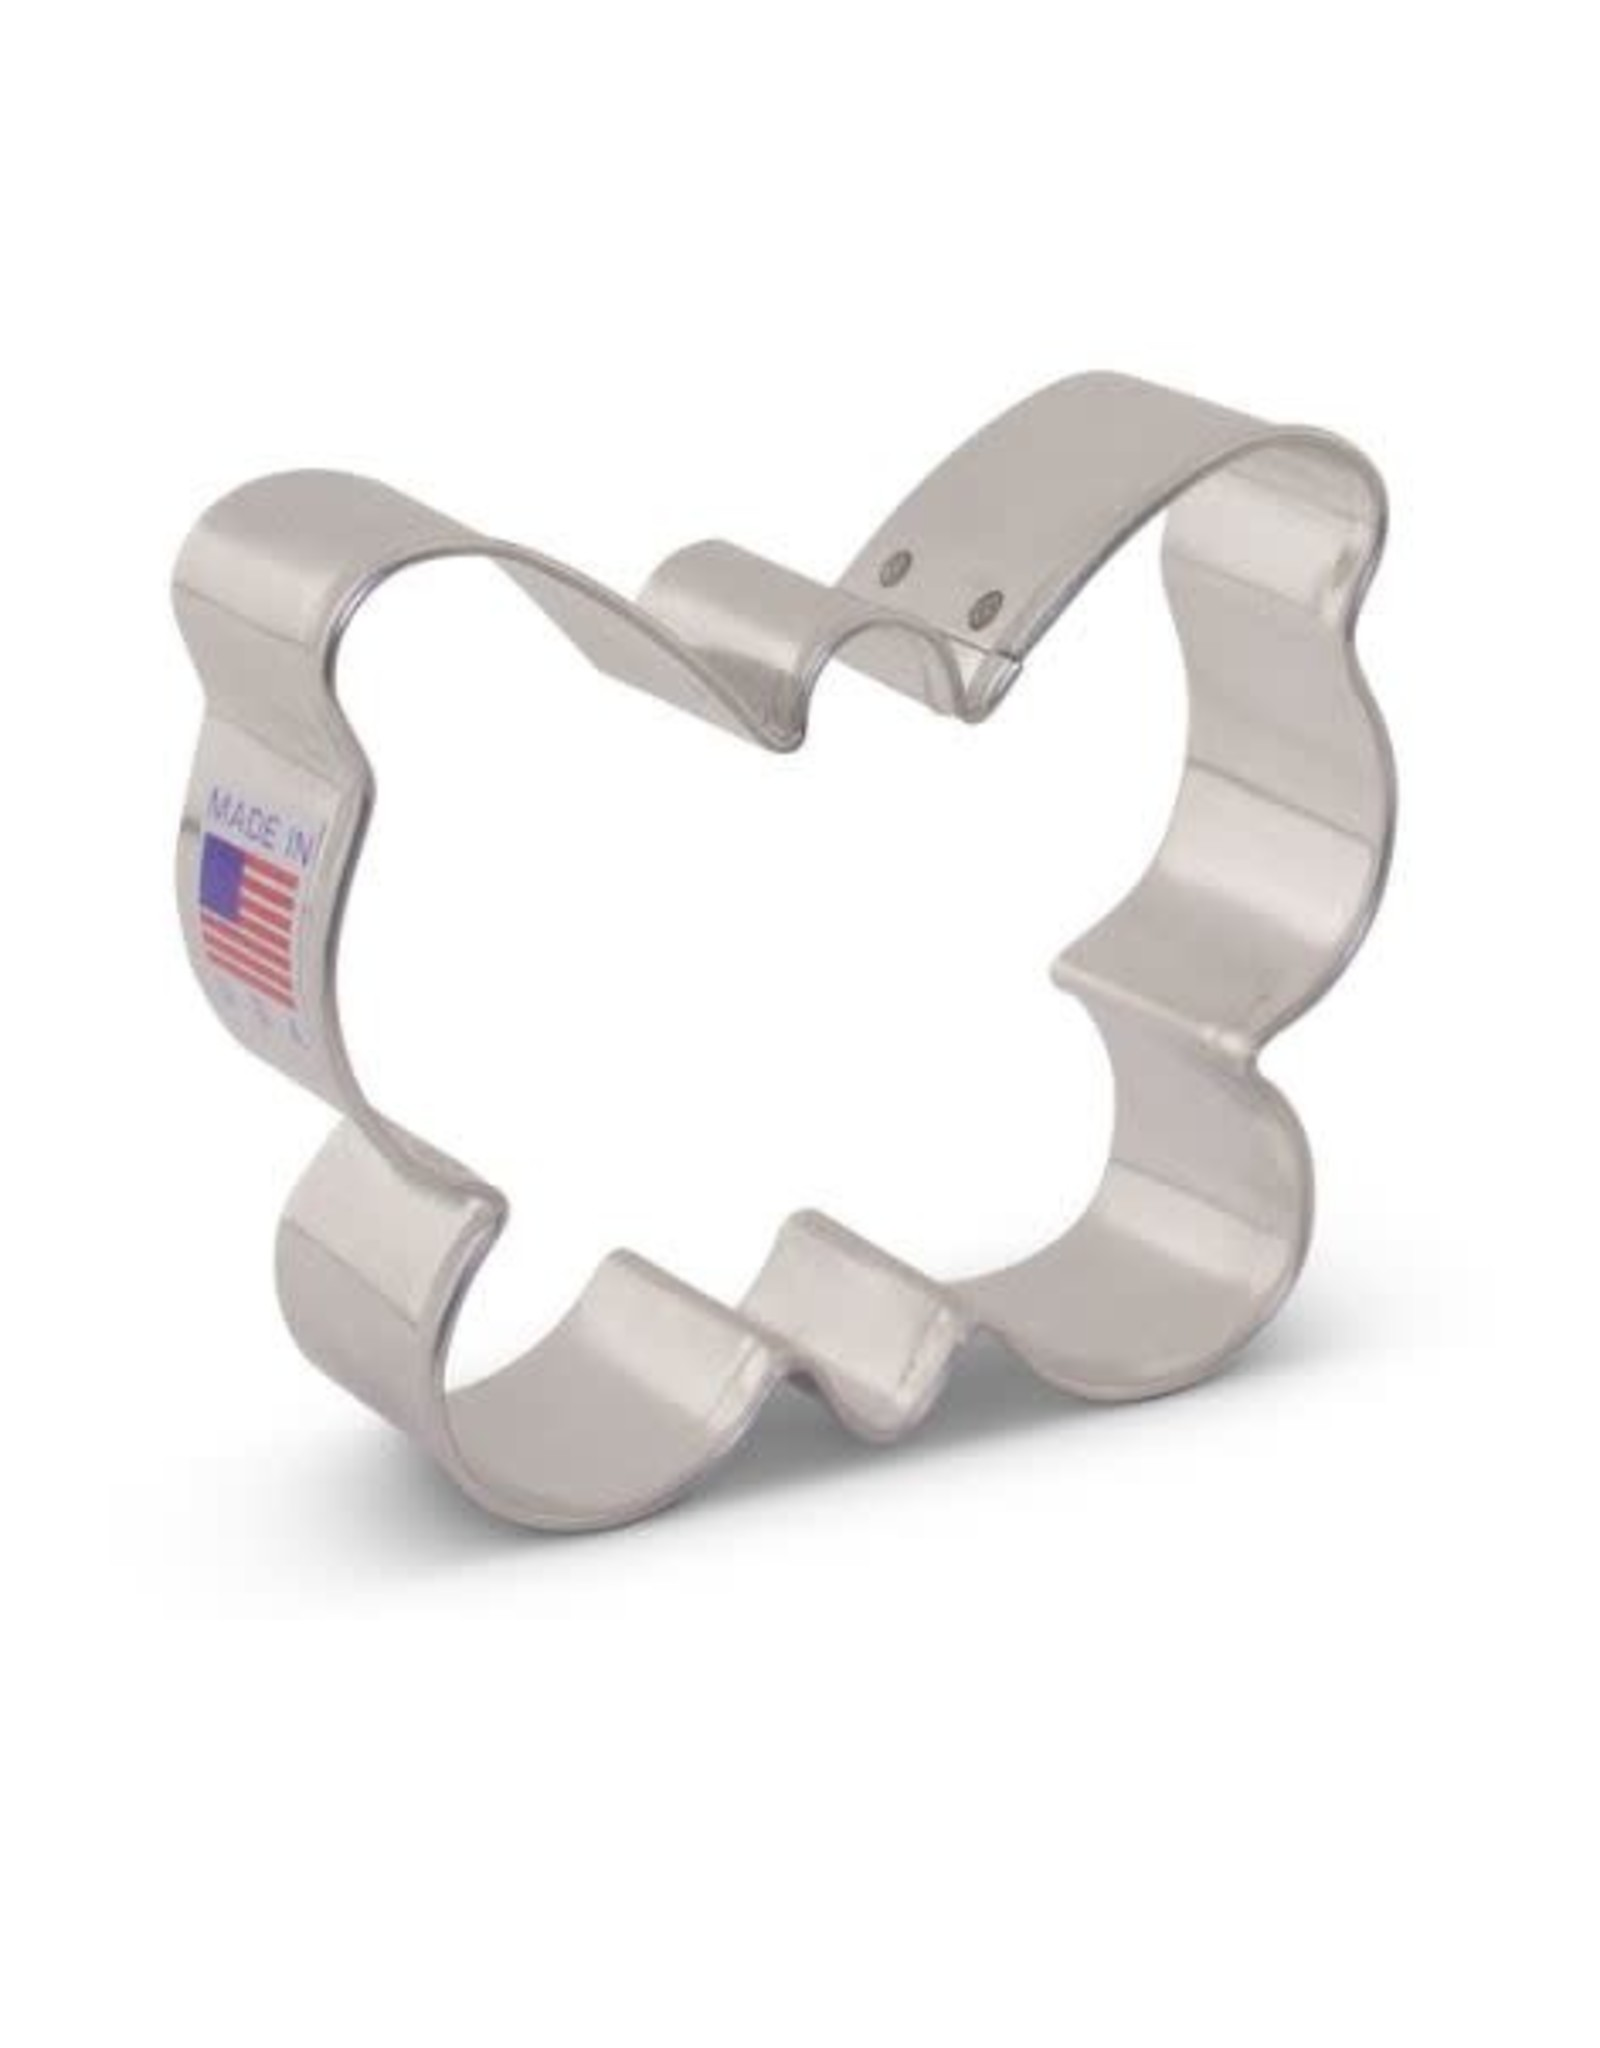 2.5x3 1/8 Butterfly Cookie Cutter